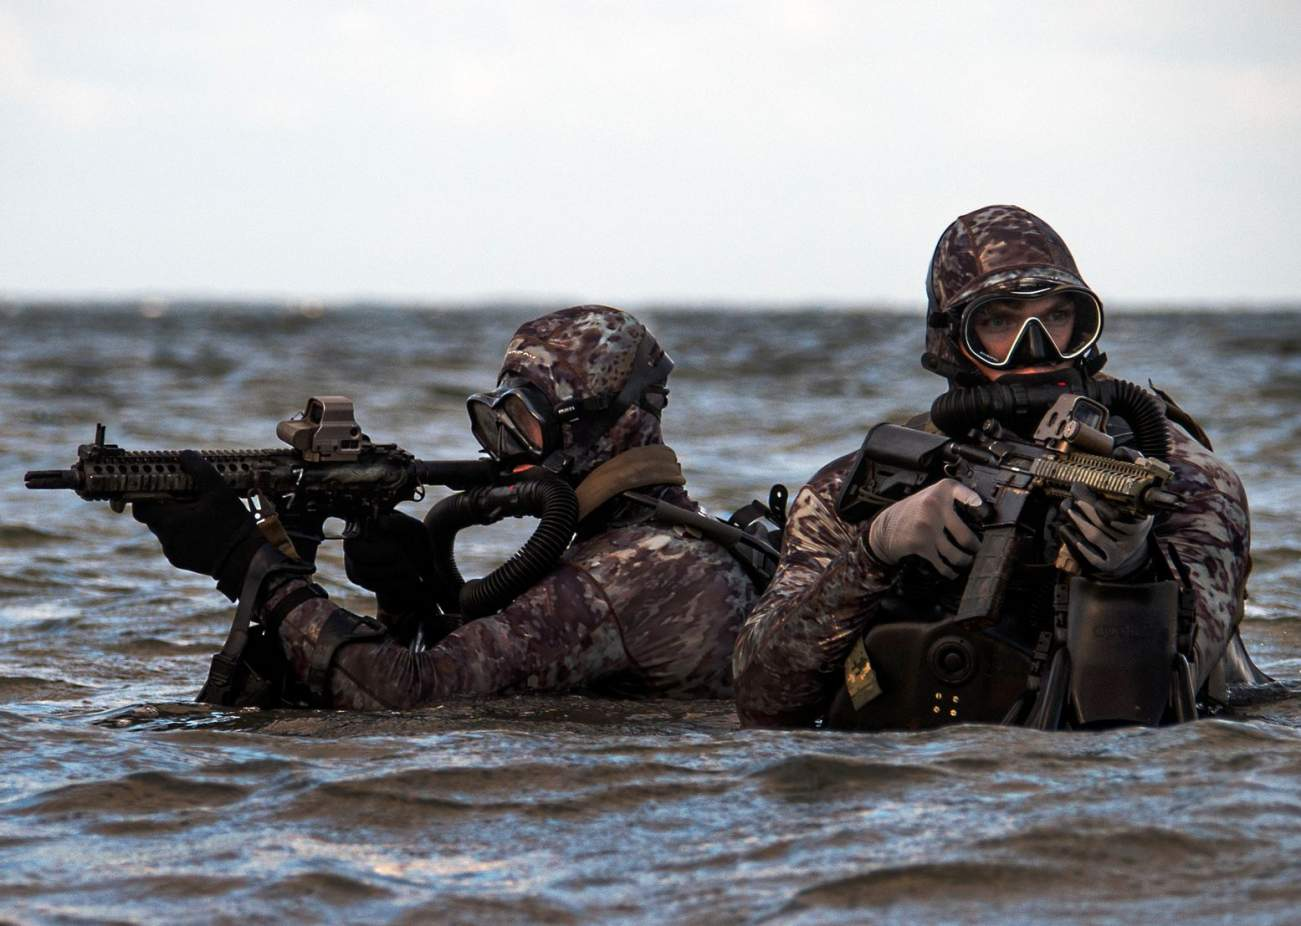 The Navy SEALs Could Take on Iran's Special Forces in a War